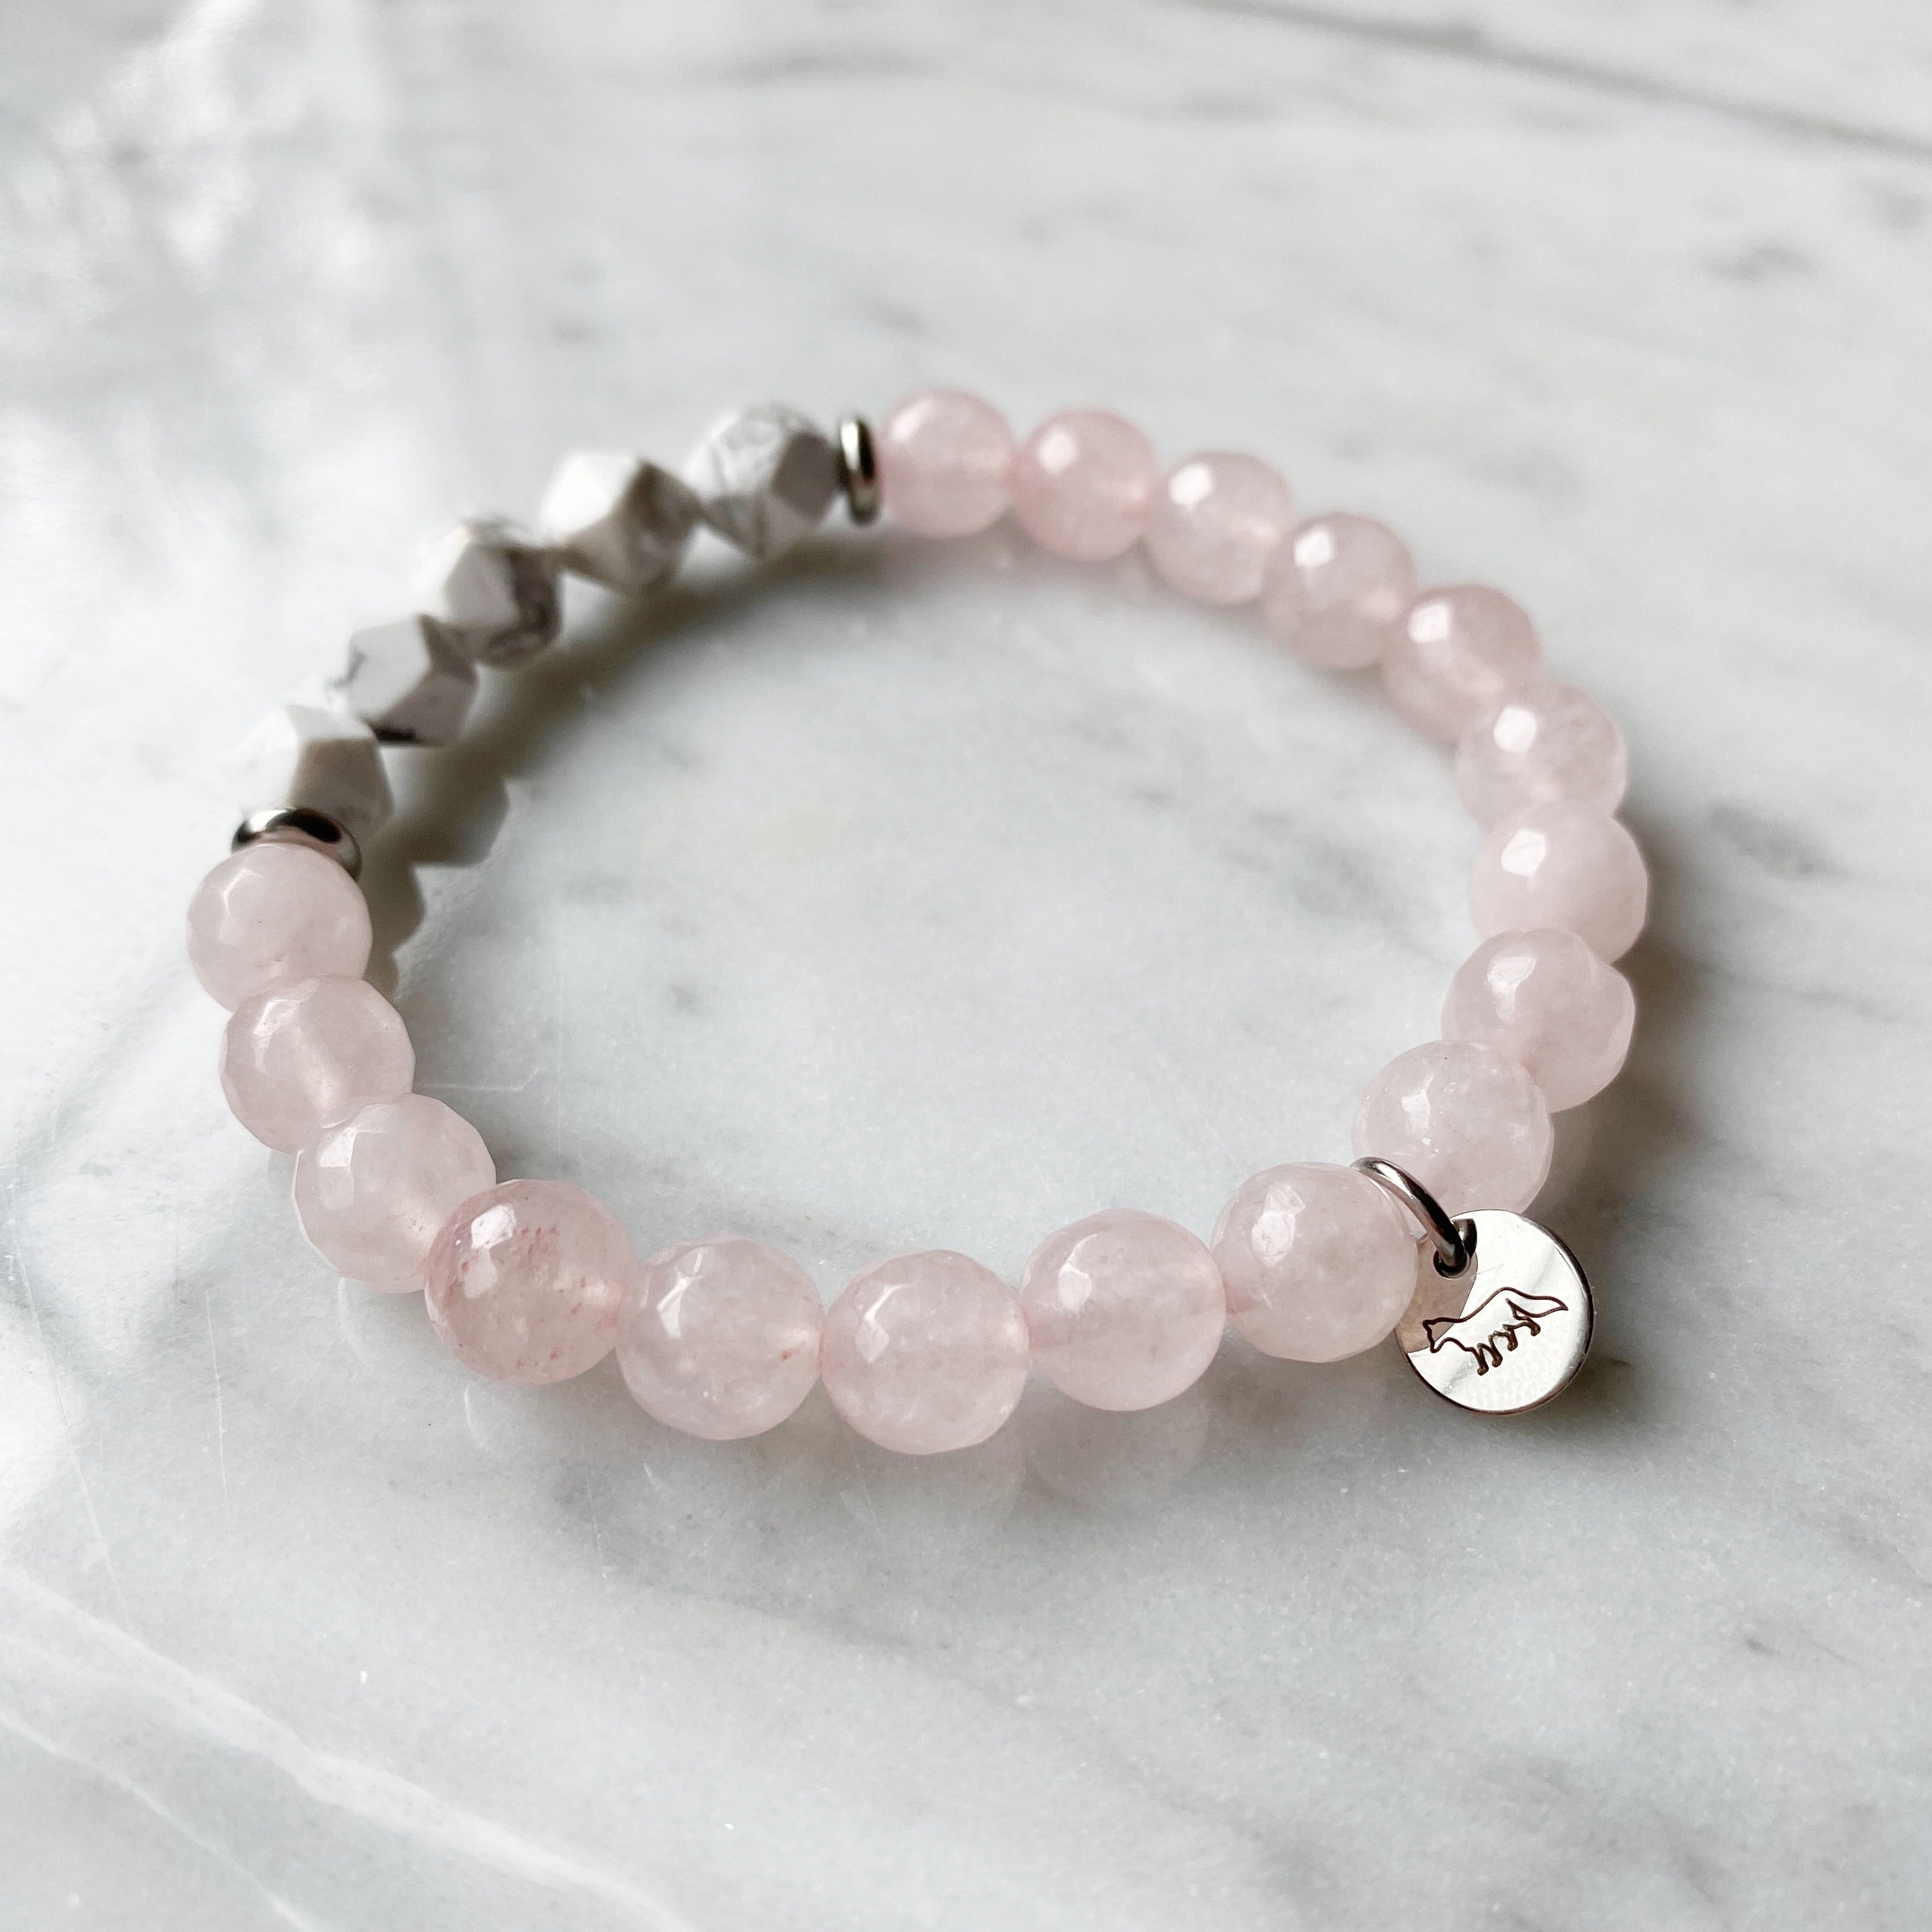 Rose Quartz and Howlite Bracelet - 8mm